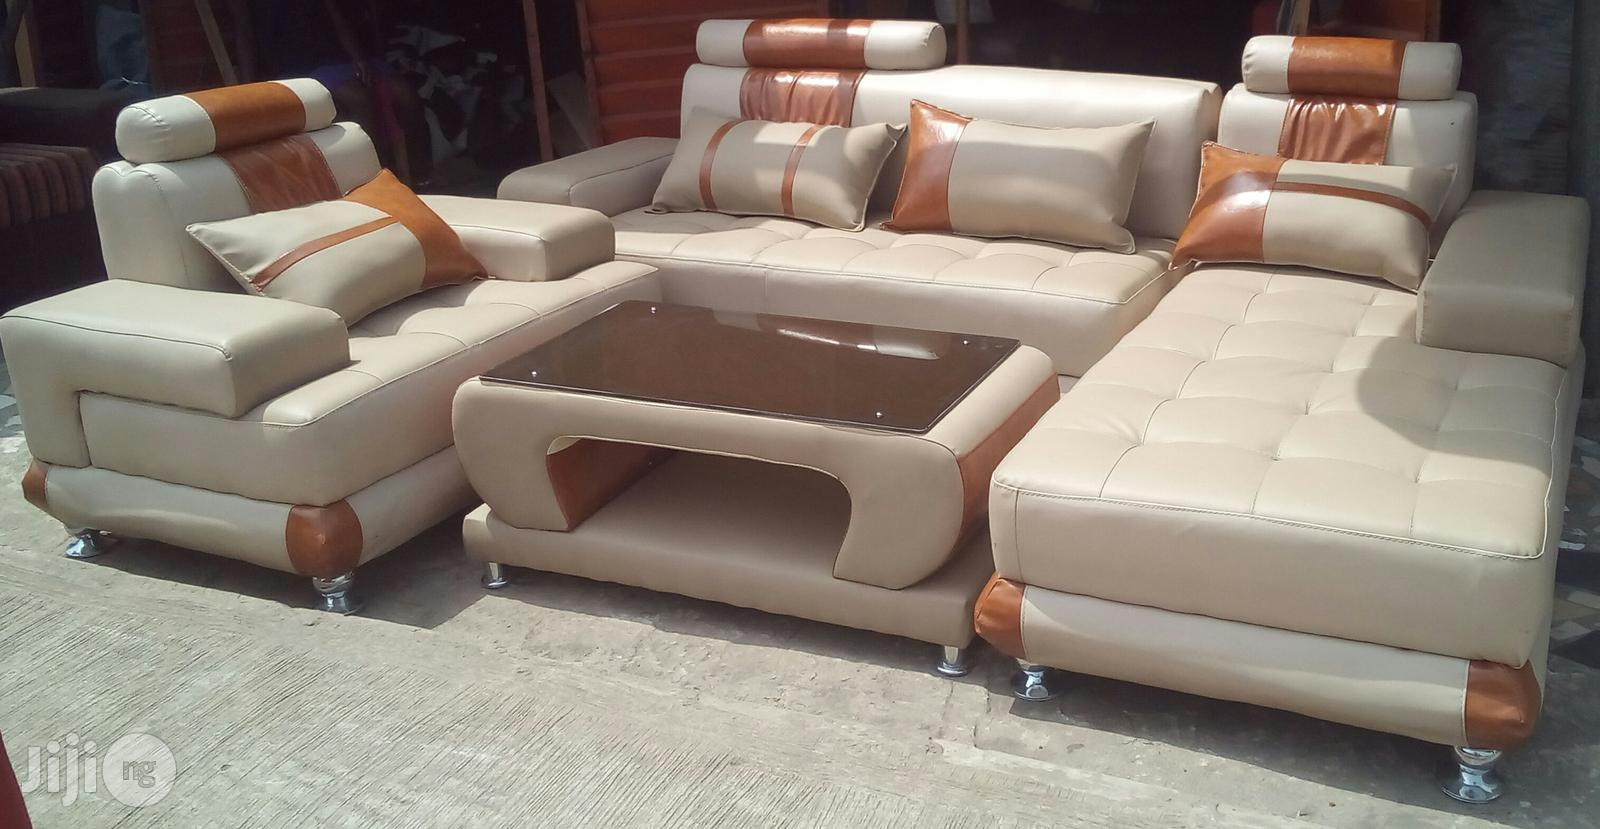 Set Of Living Room Couches And A Centre Table. L-shaped Couches With A Single Seater Chair